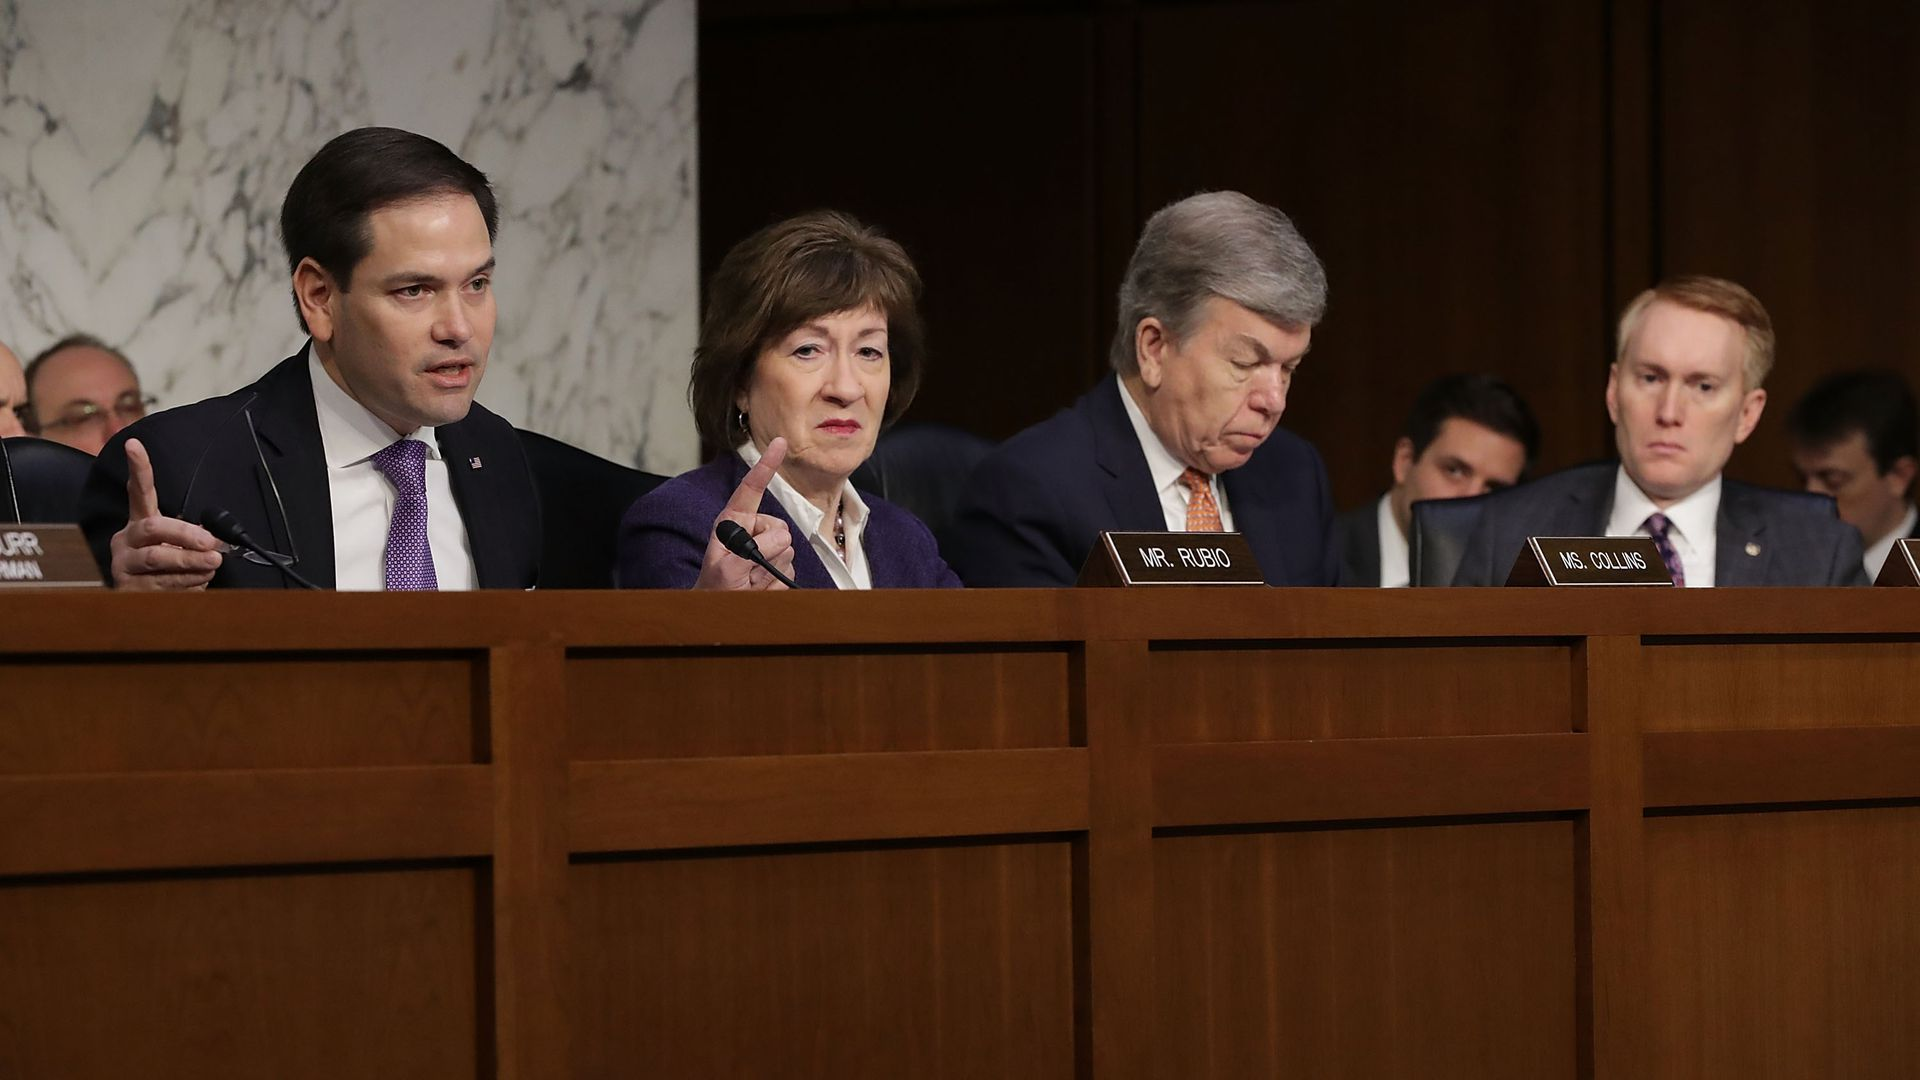 Senate Intelligence Committee members Marco Rubio, Susan Collins and others preside over a hearing.